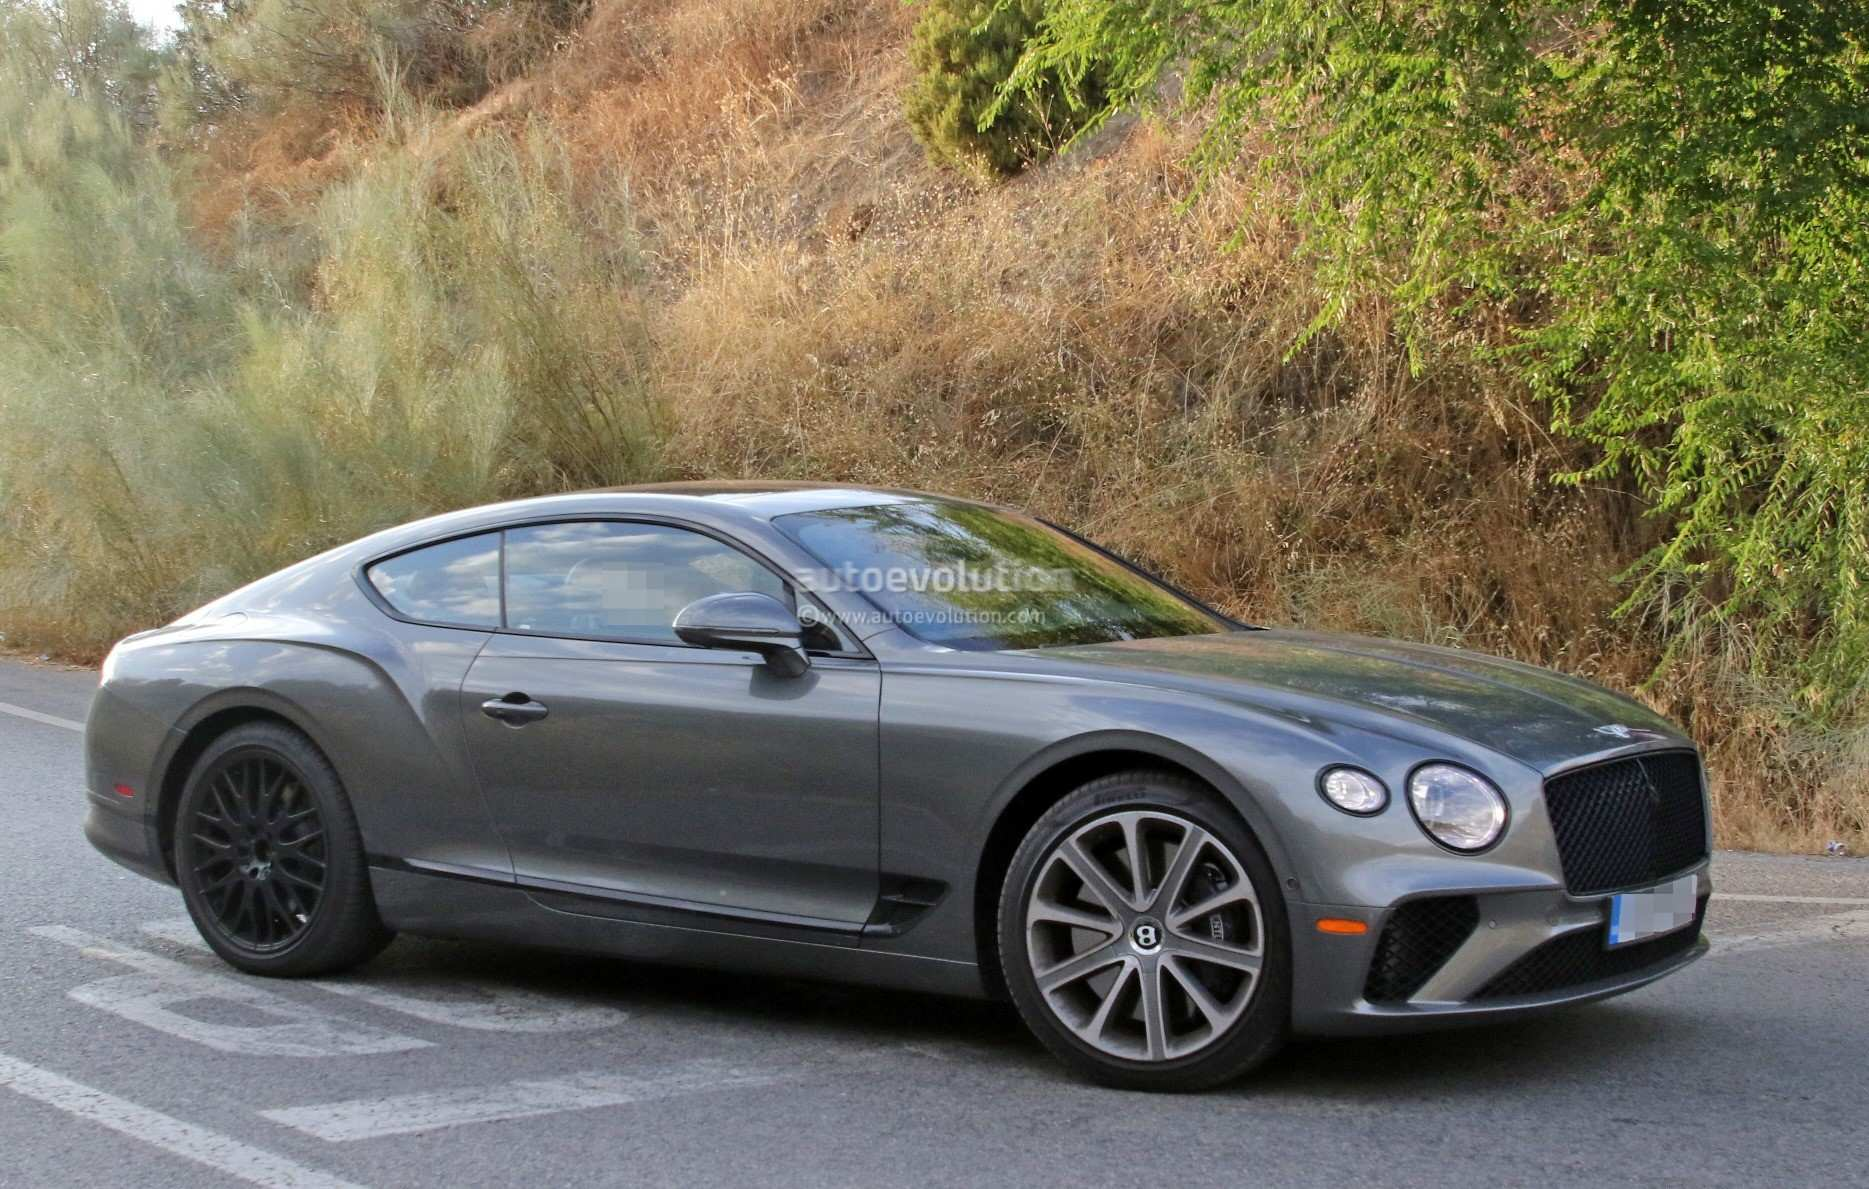 71 A 2019 Bentley Continental Release Date